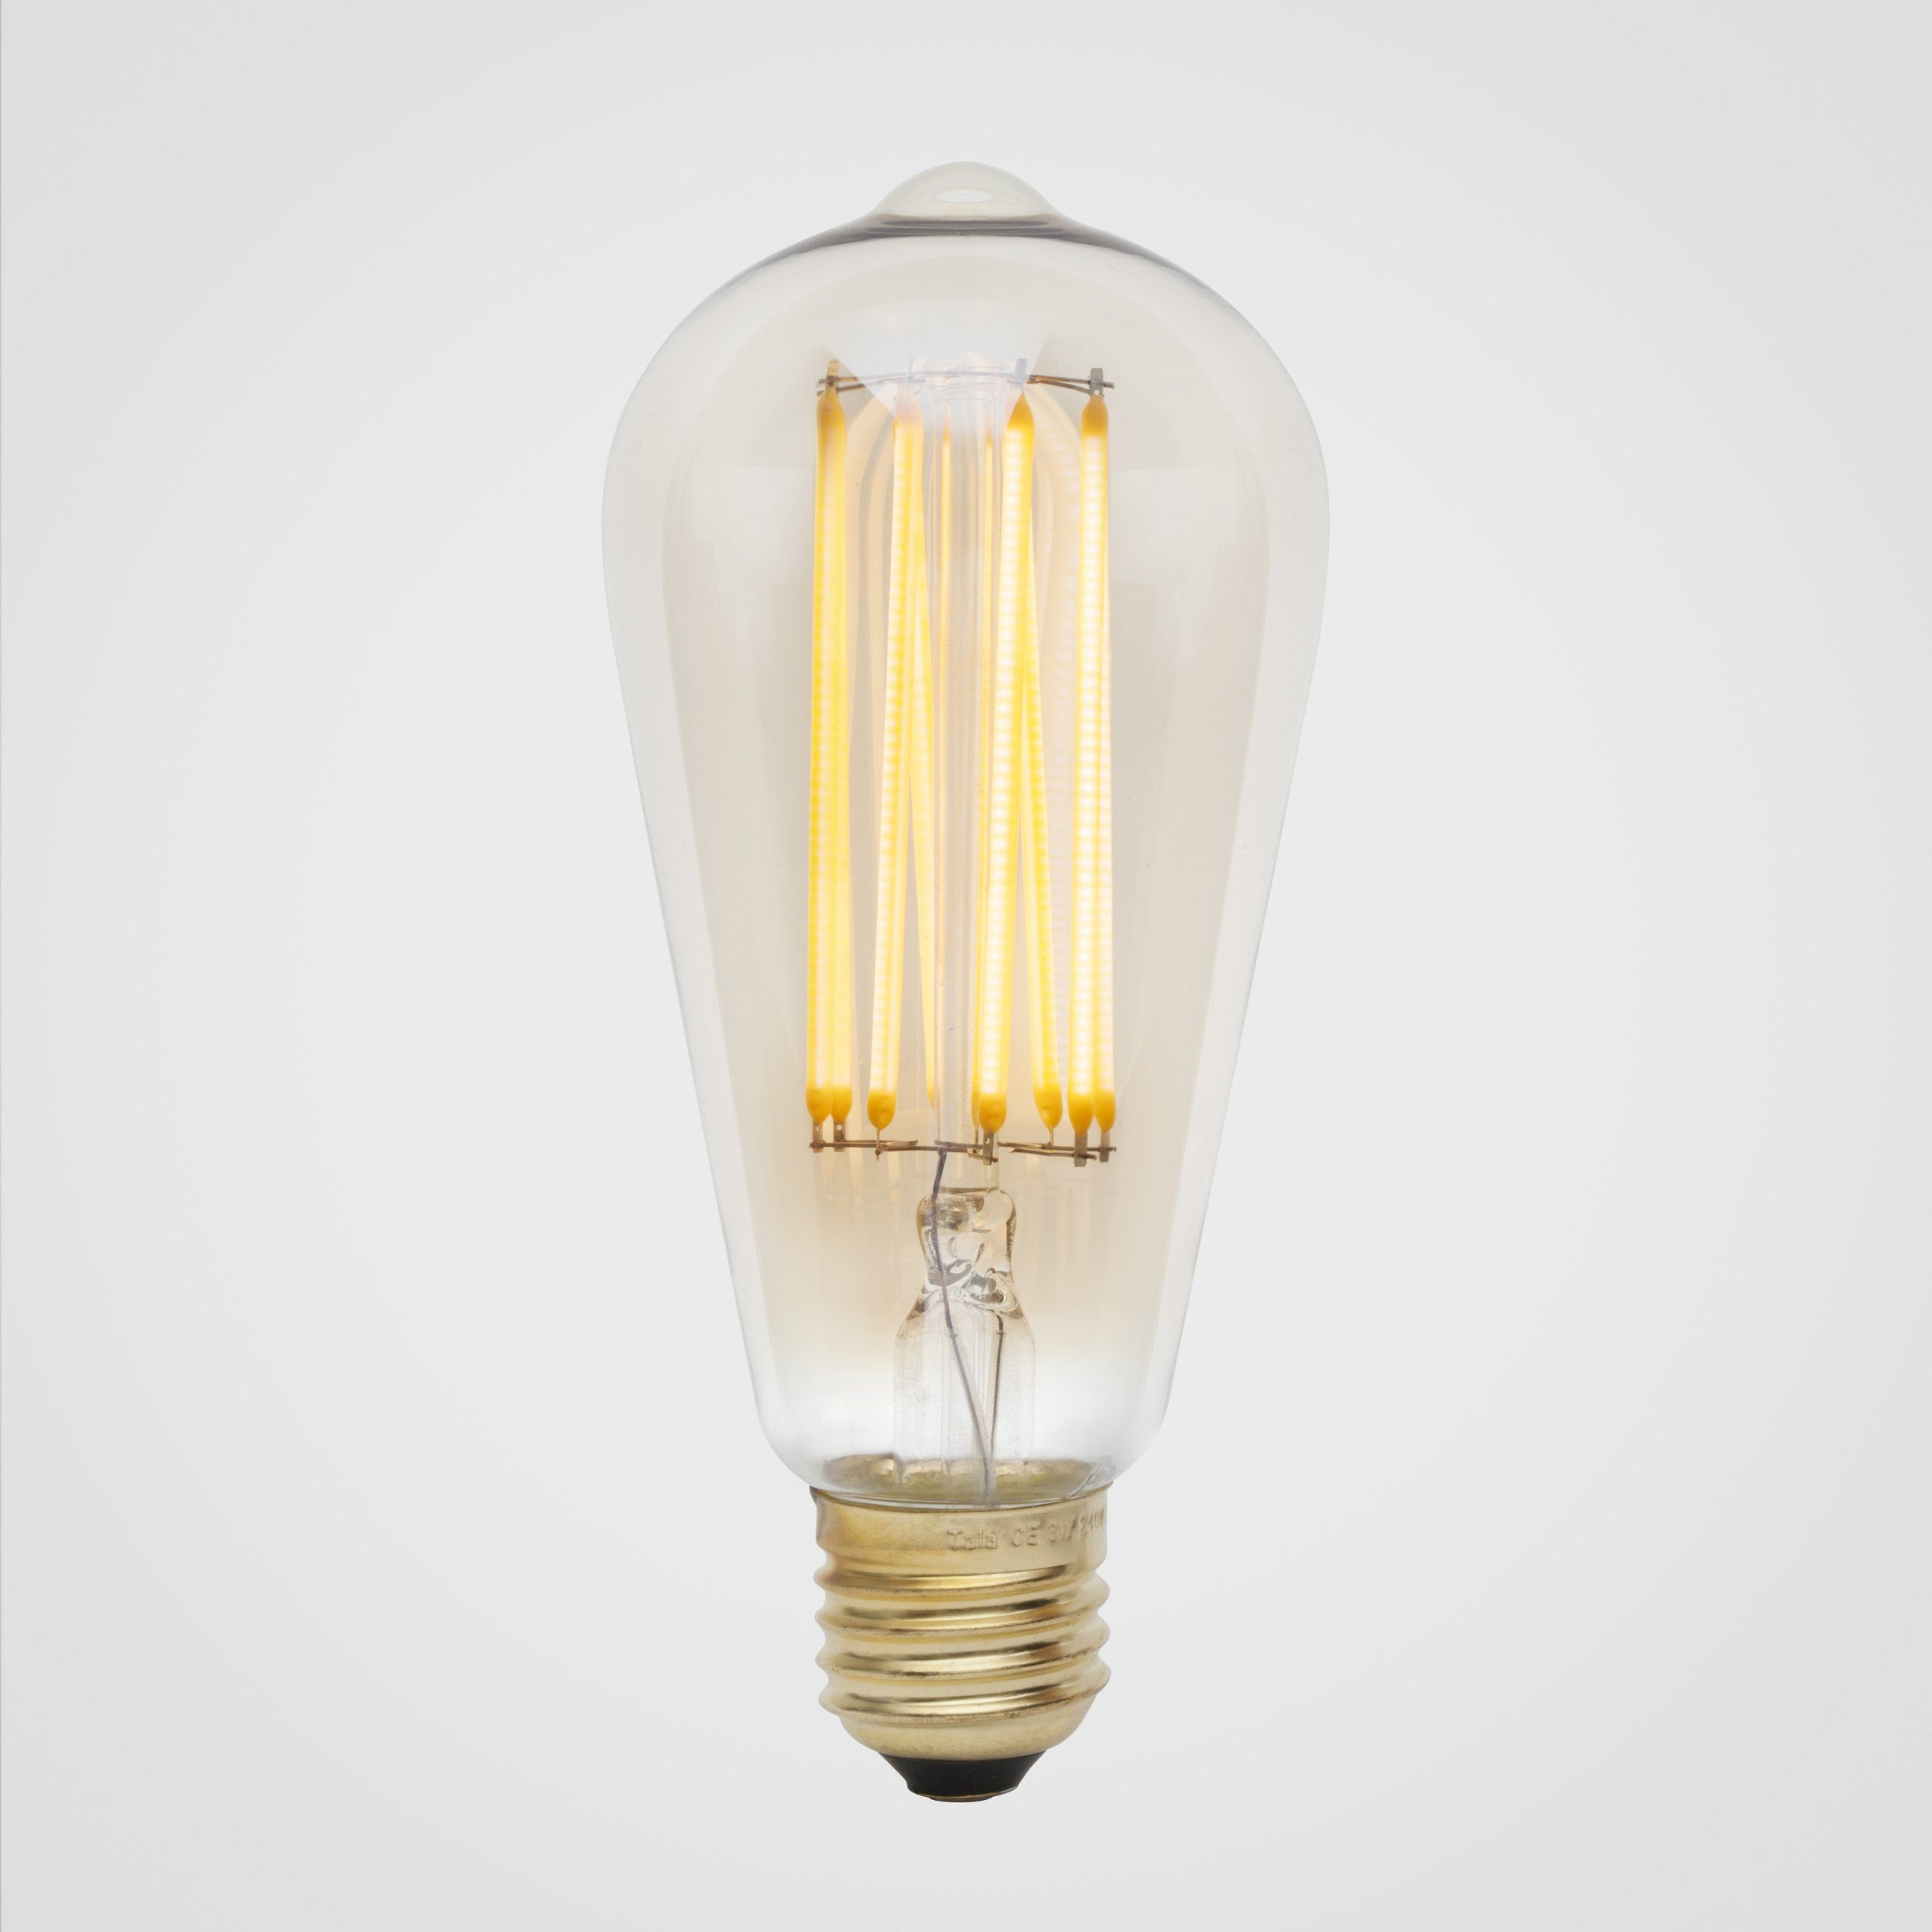 Squirrel Light Bulb (Pre-Order) - Light Bulbs - Tala - Naiise